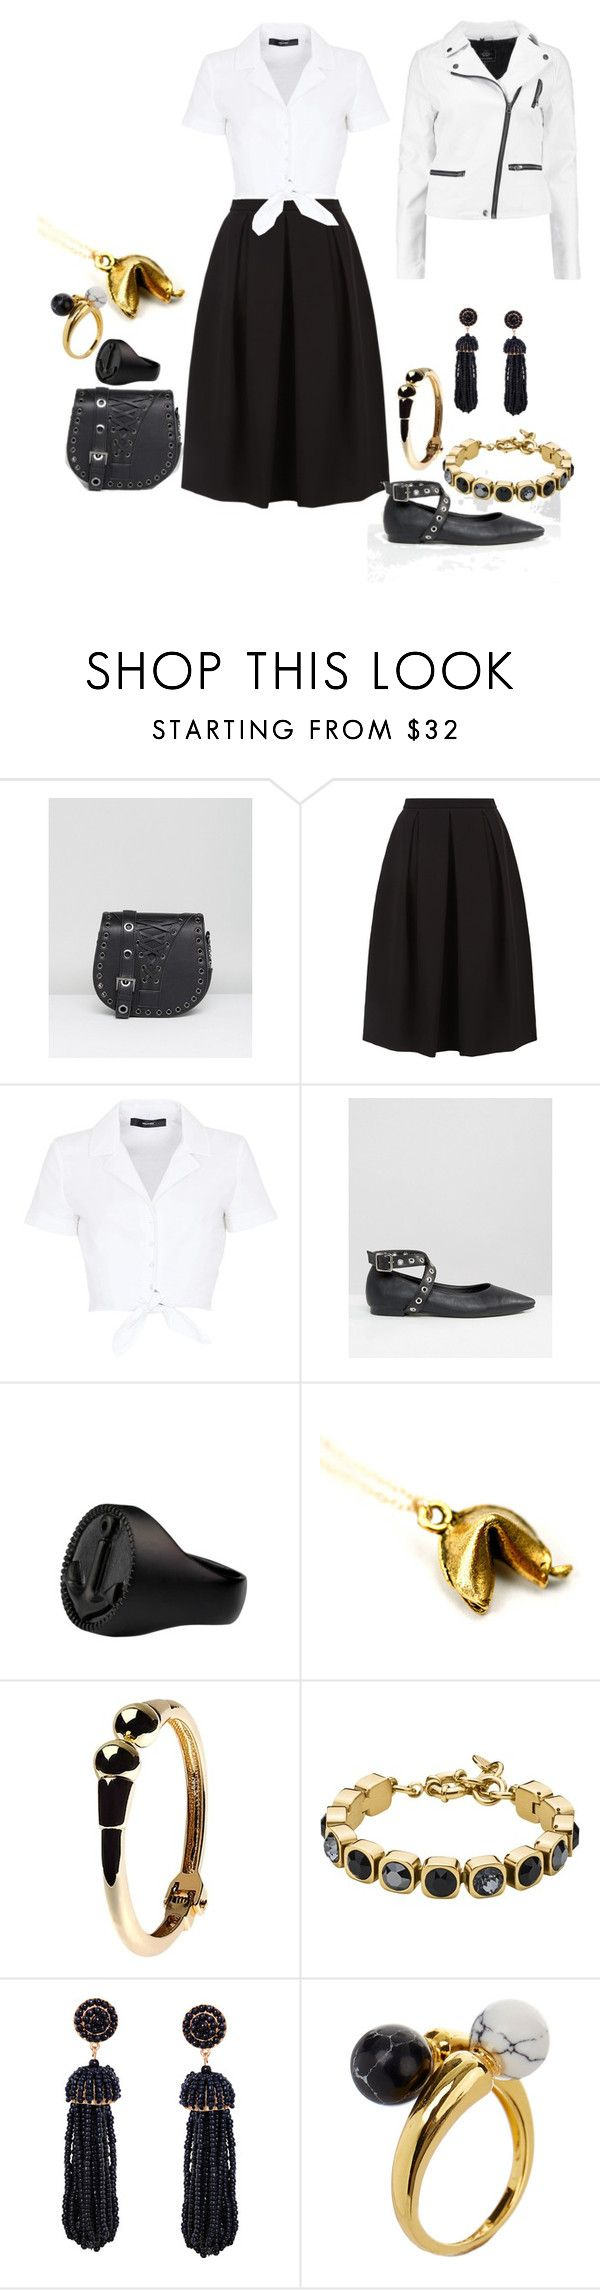 """""""Untitled #1226"""" by ayeeeitsfatso on Polyvore featuring Marc, Monsoon, Hallhuber, Daisy Street, Adele Marie, Dyrberg/Kern, Humble Chic, Noir Jewelry and Boohoo"""